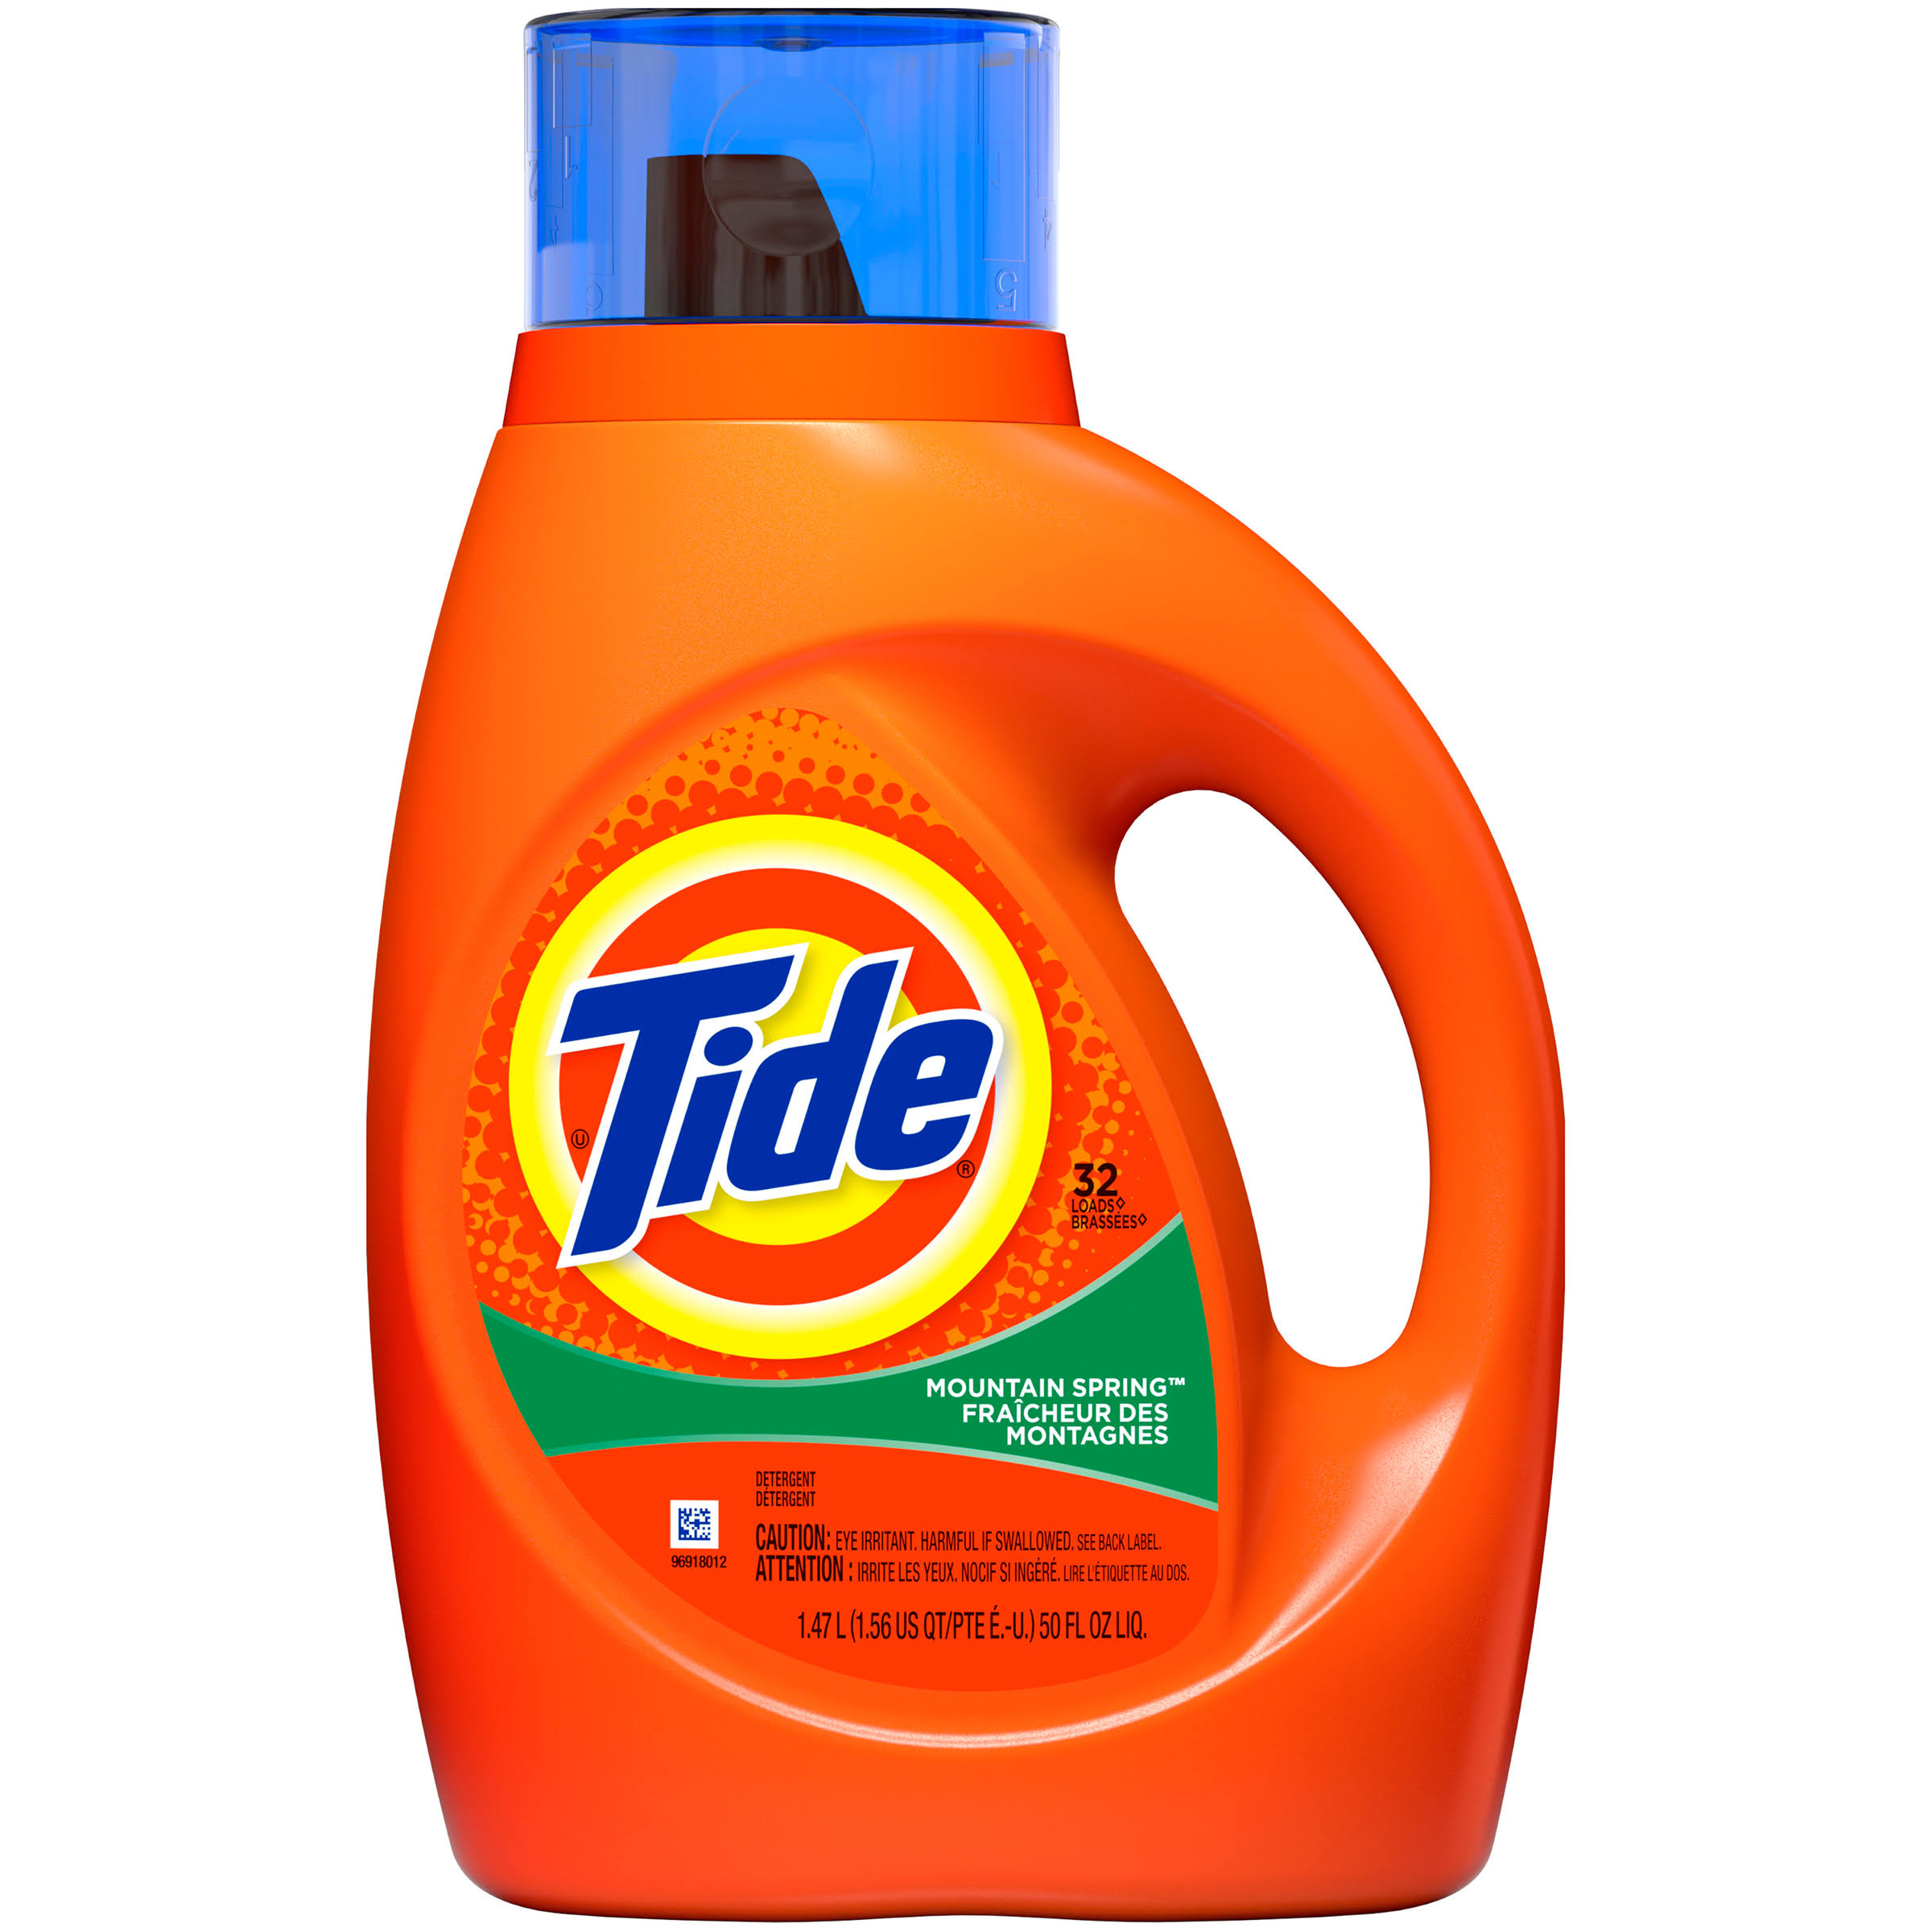 Tide Liquid Laundry Detergent - 32 Loads, Mountain Spring Scent